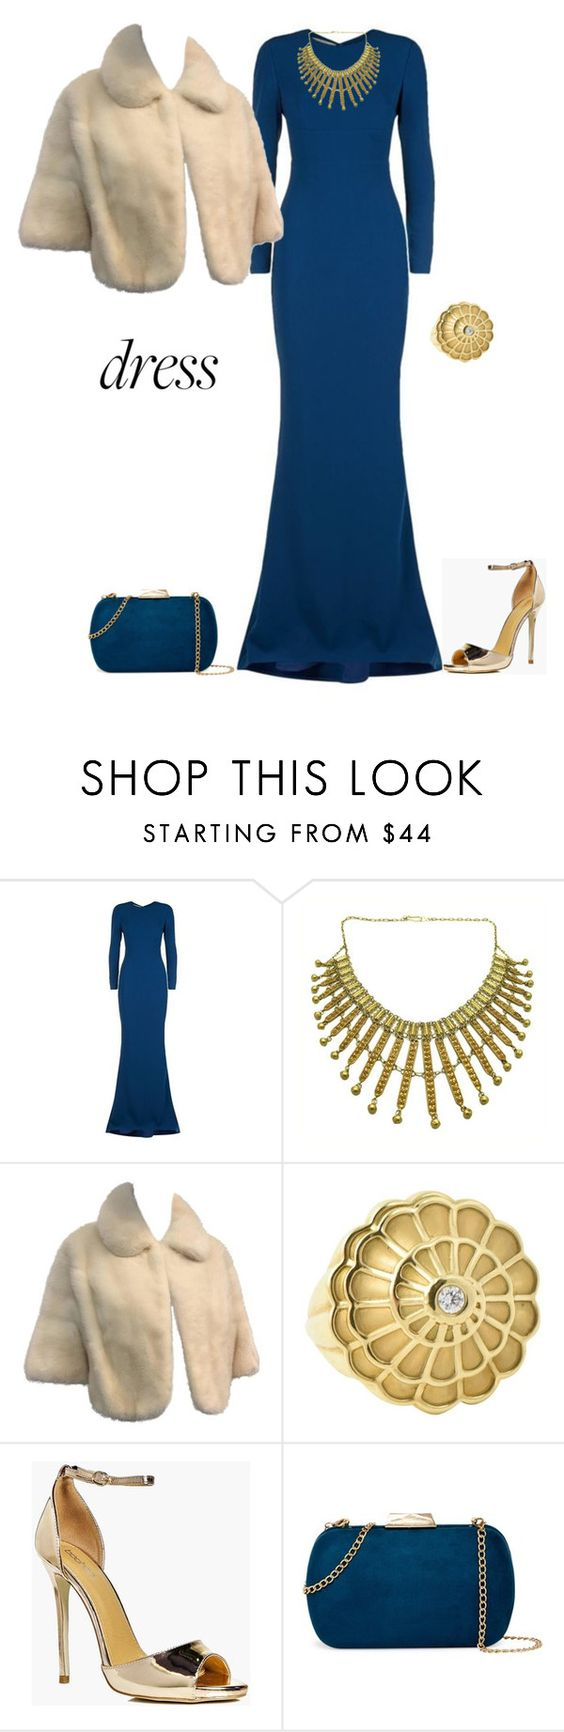 """outfit 5476"" by natalyag ❤ liked on Polyvore featuring STELLA McCARTNEY, Carrera y Carrera, Boohoo and Natasha Accessories"